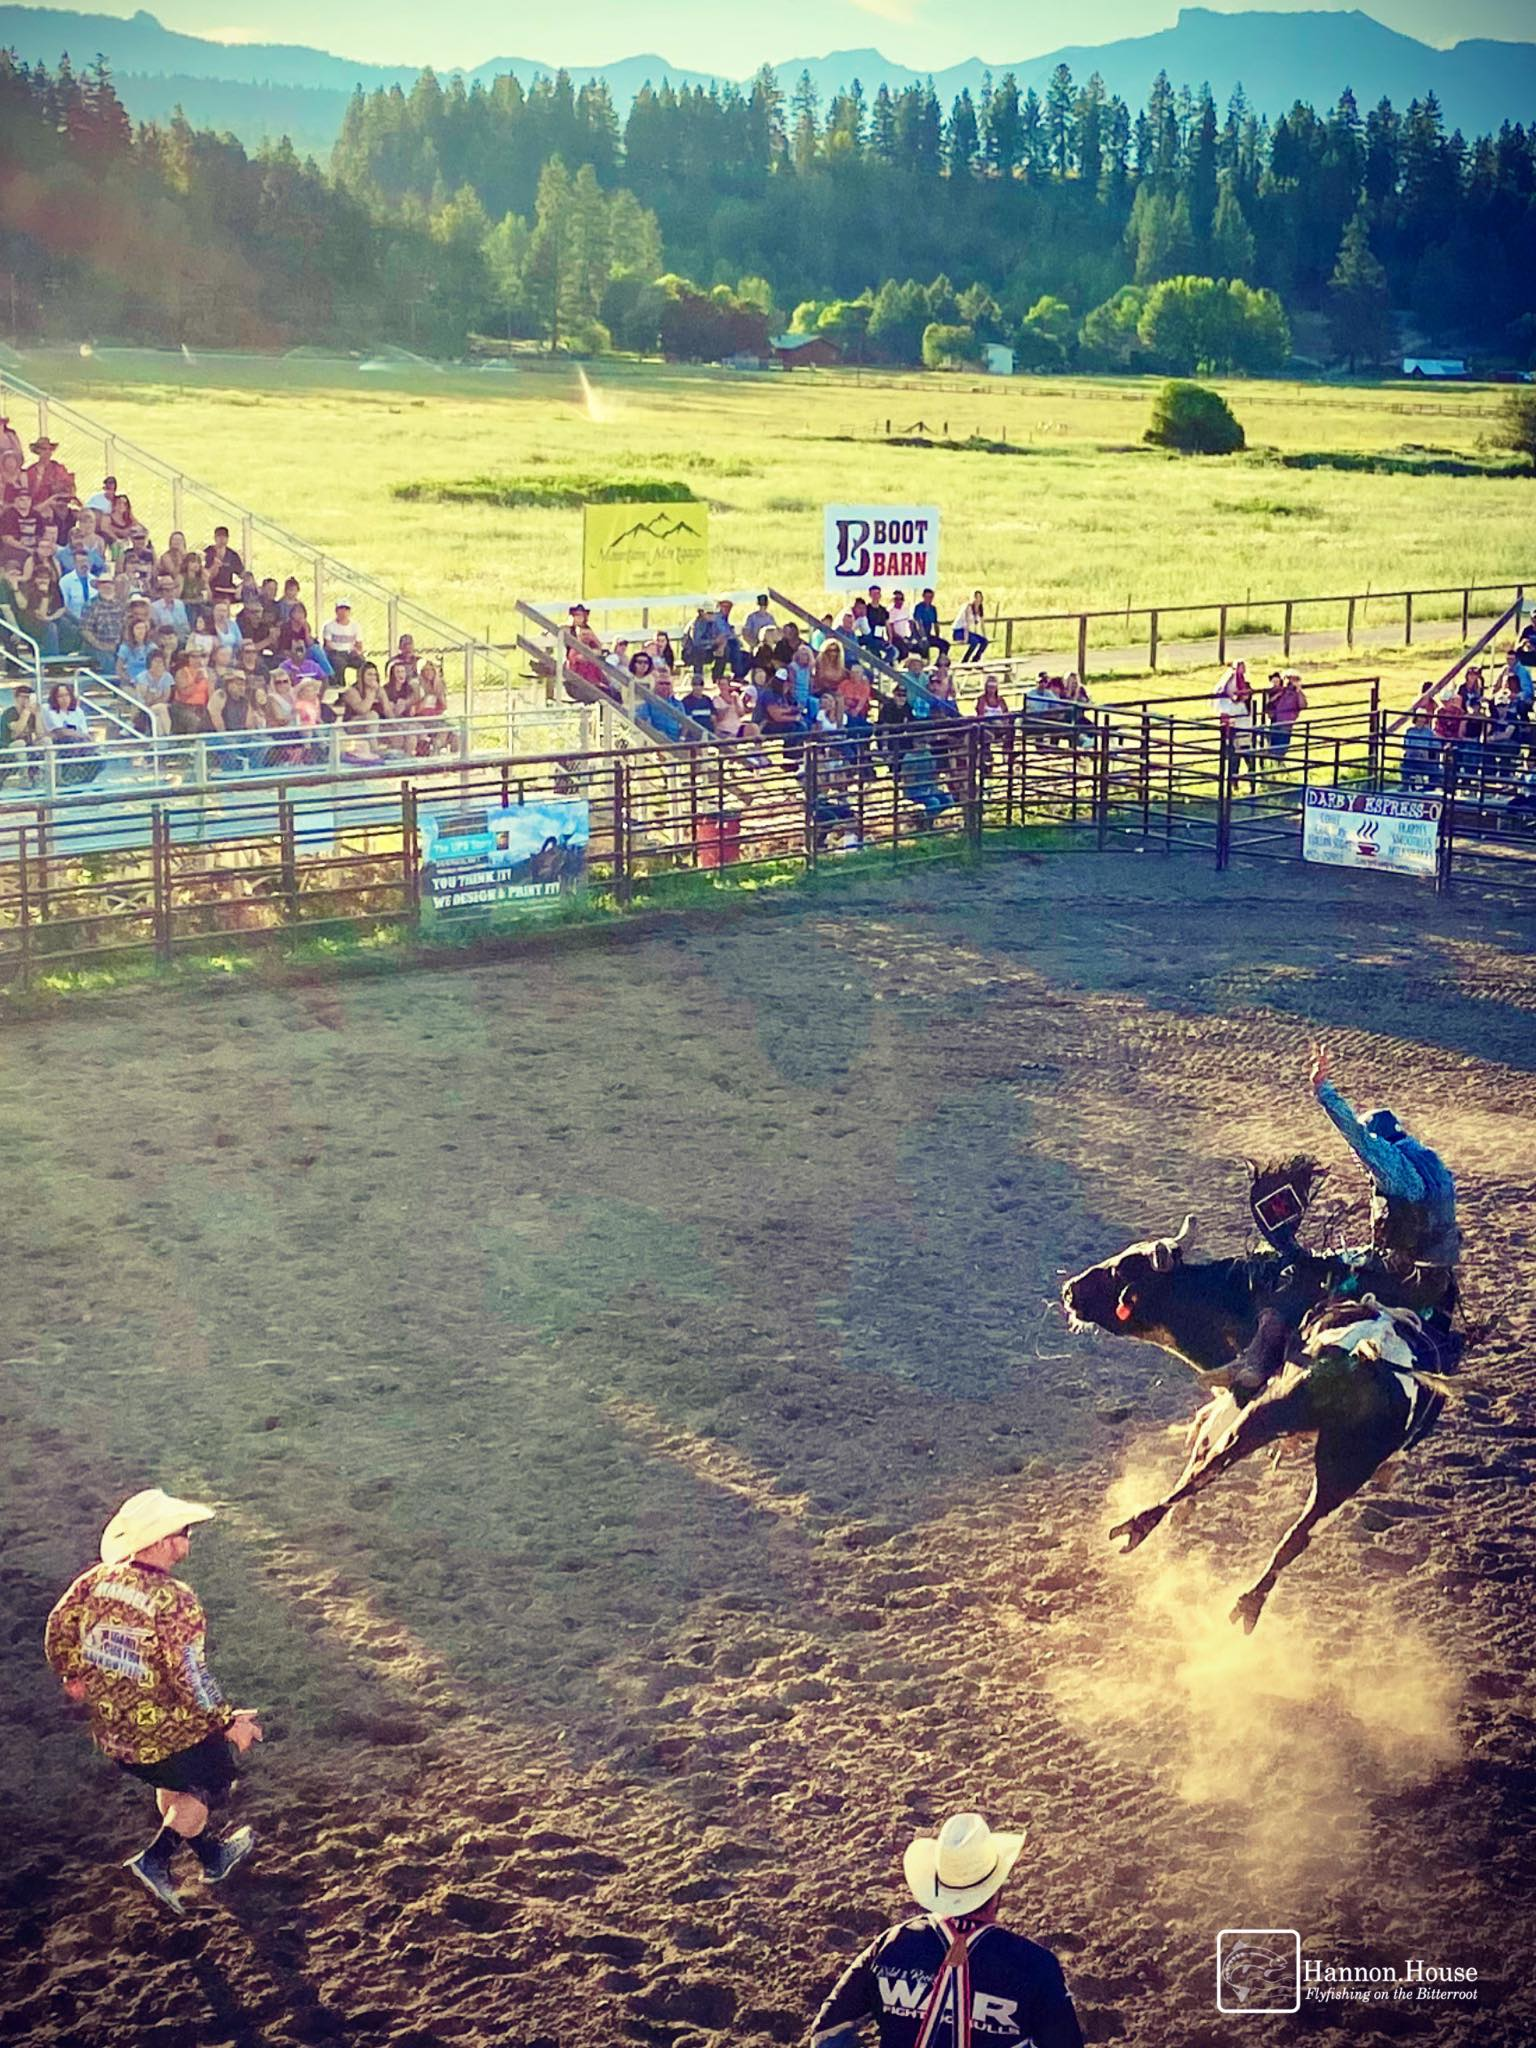 Darby Rodeo Association